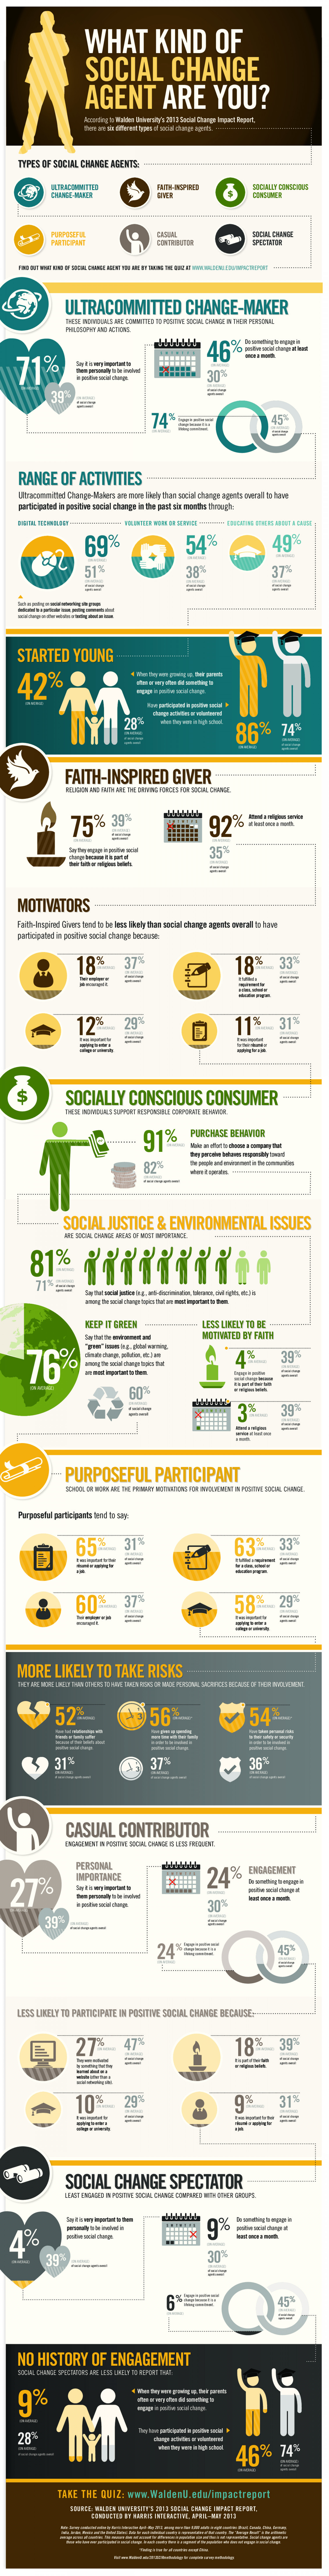 What kind of social change agent are you? Infographic